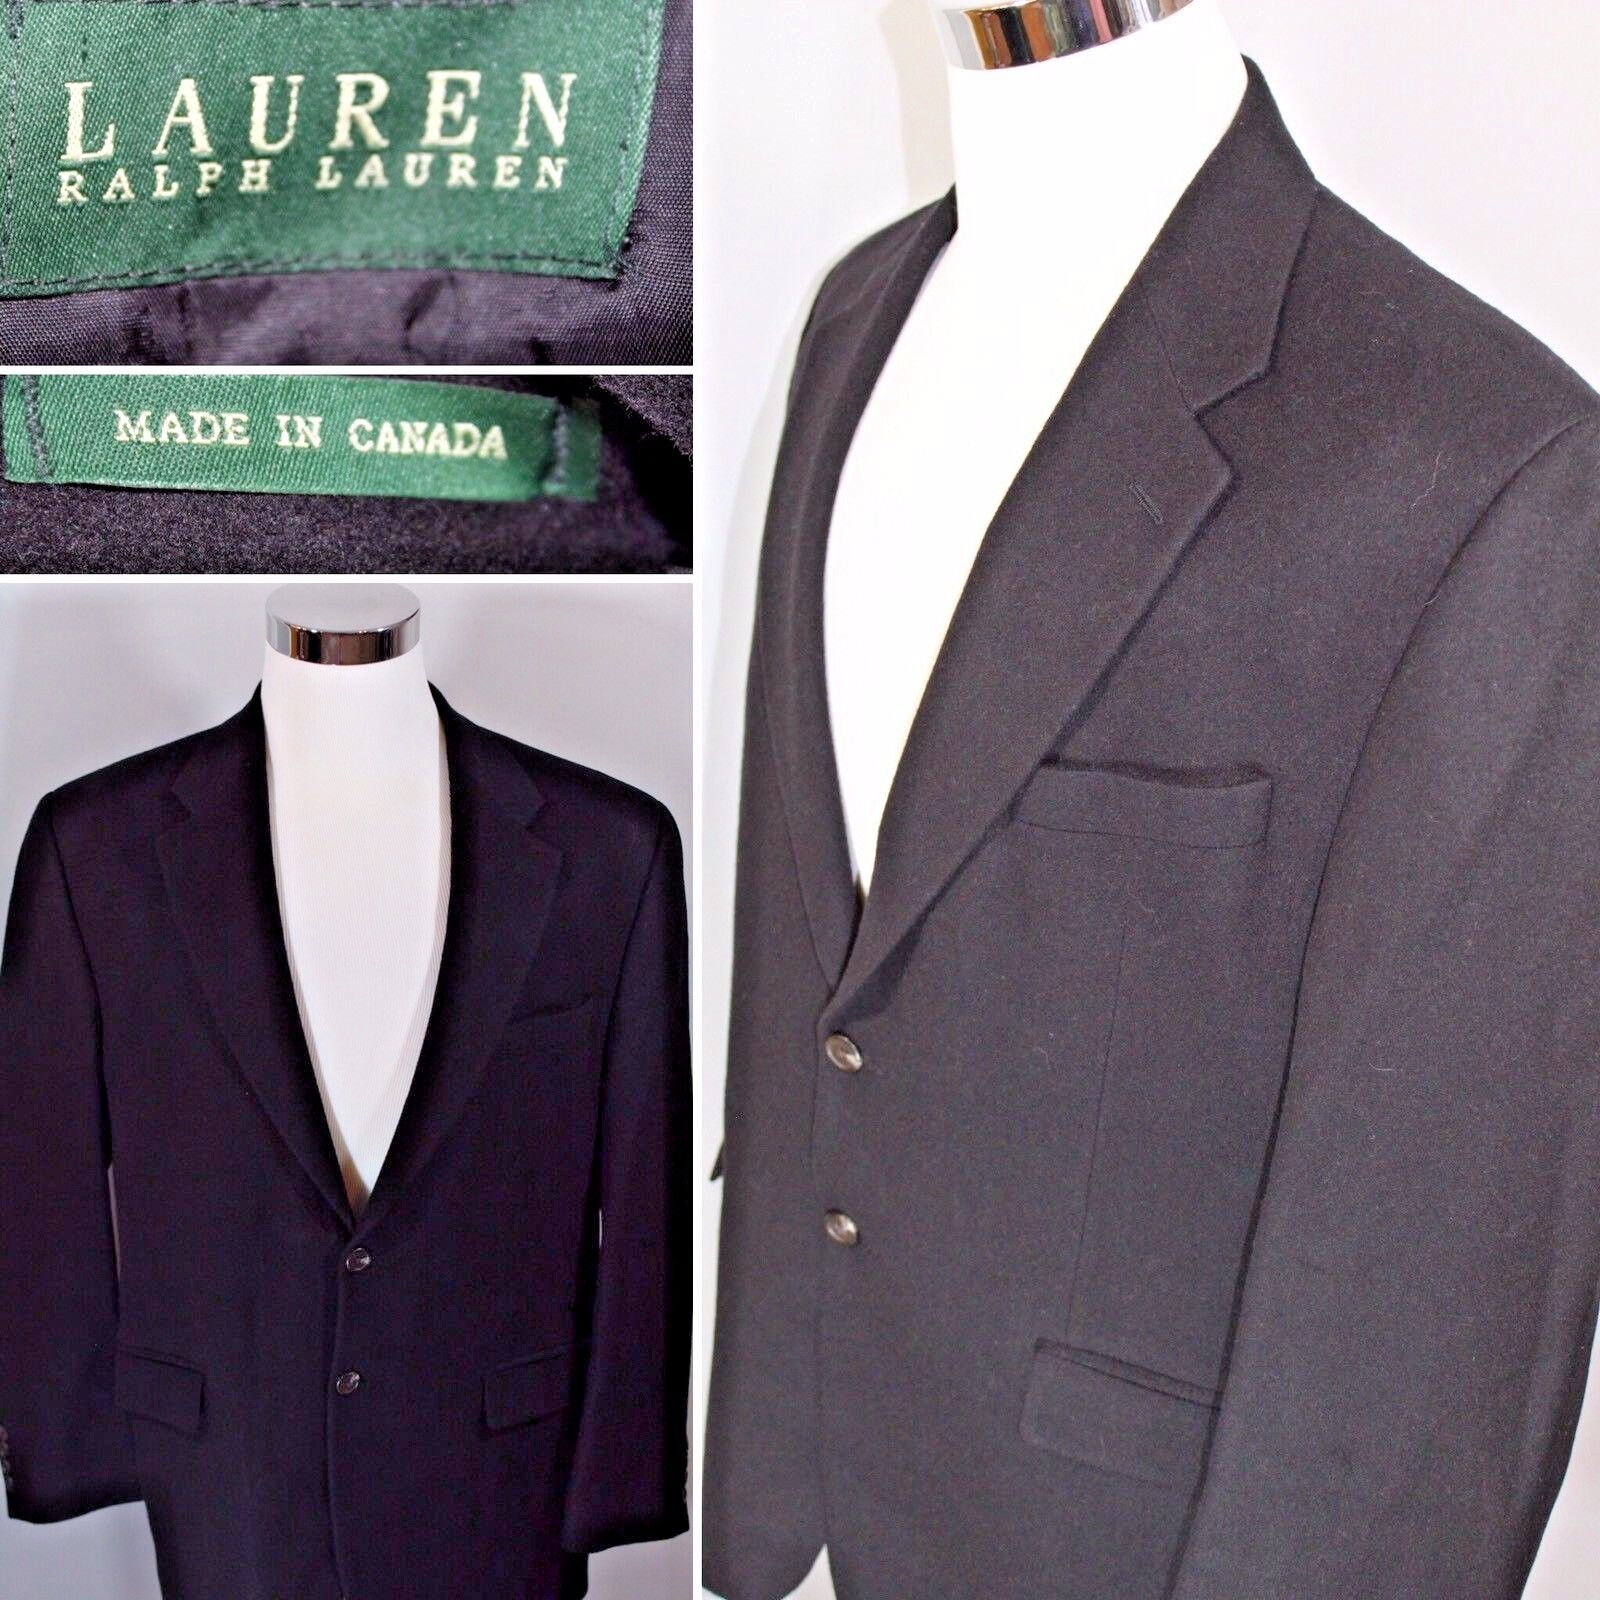 LAUREN RALPH LAUREN Grün Label Camel Hair Blazer Made in Canada  Herren SZ 45 R